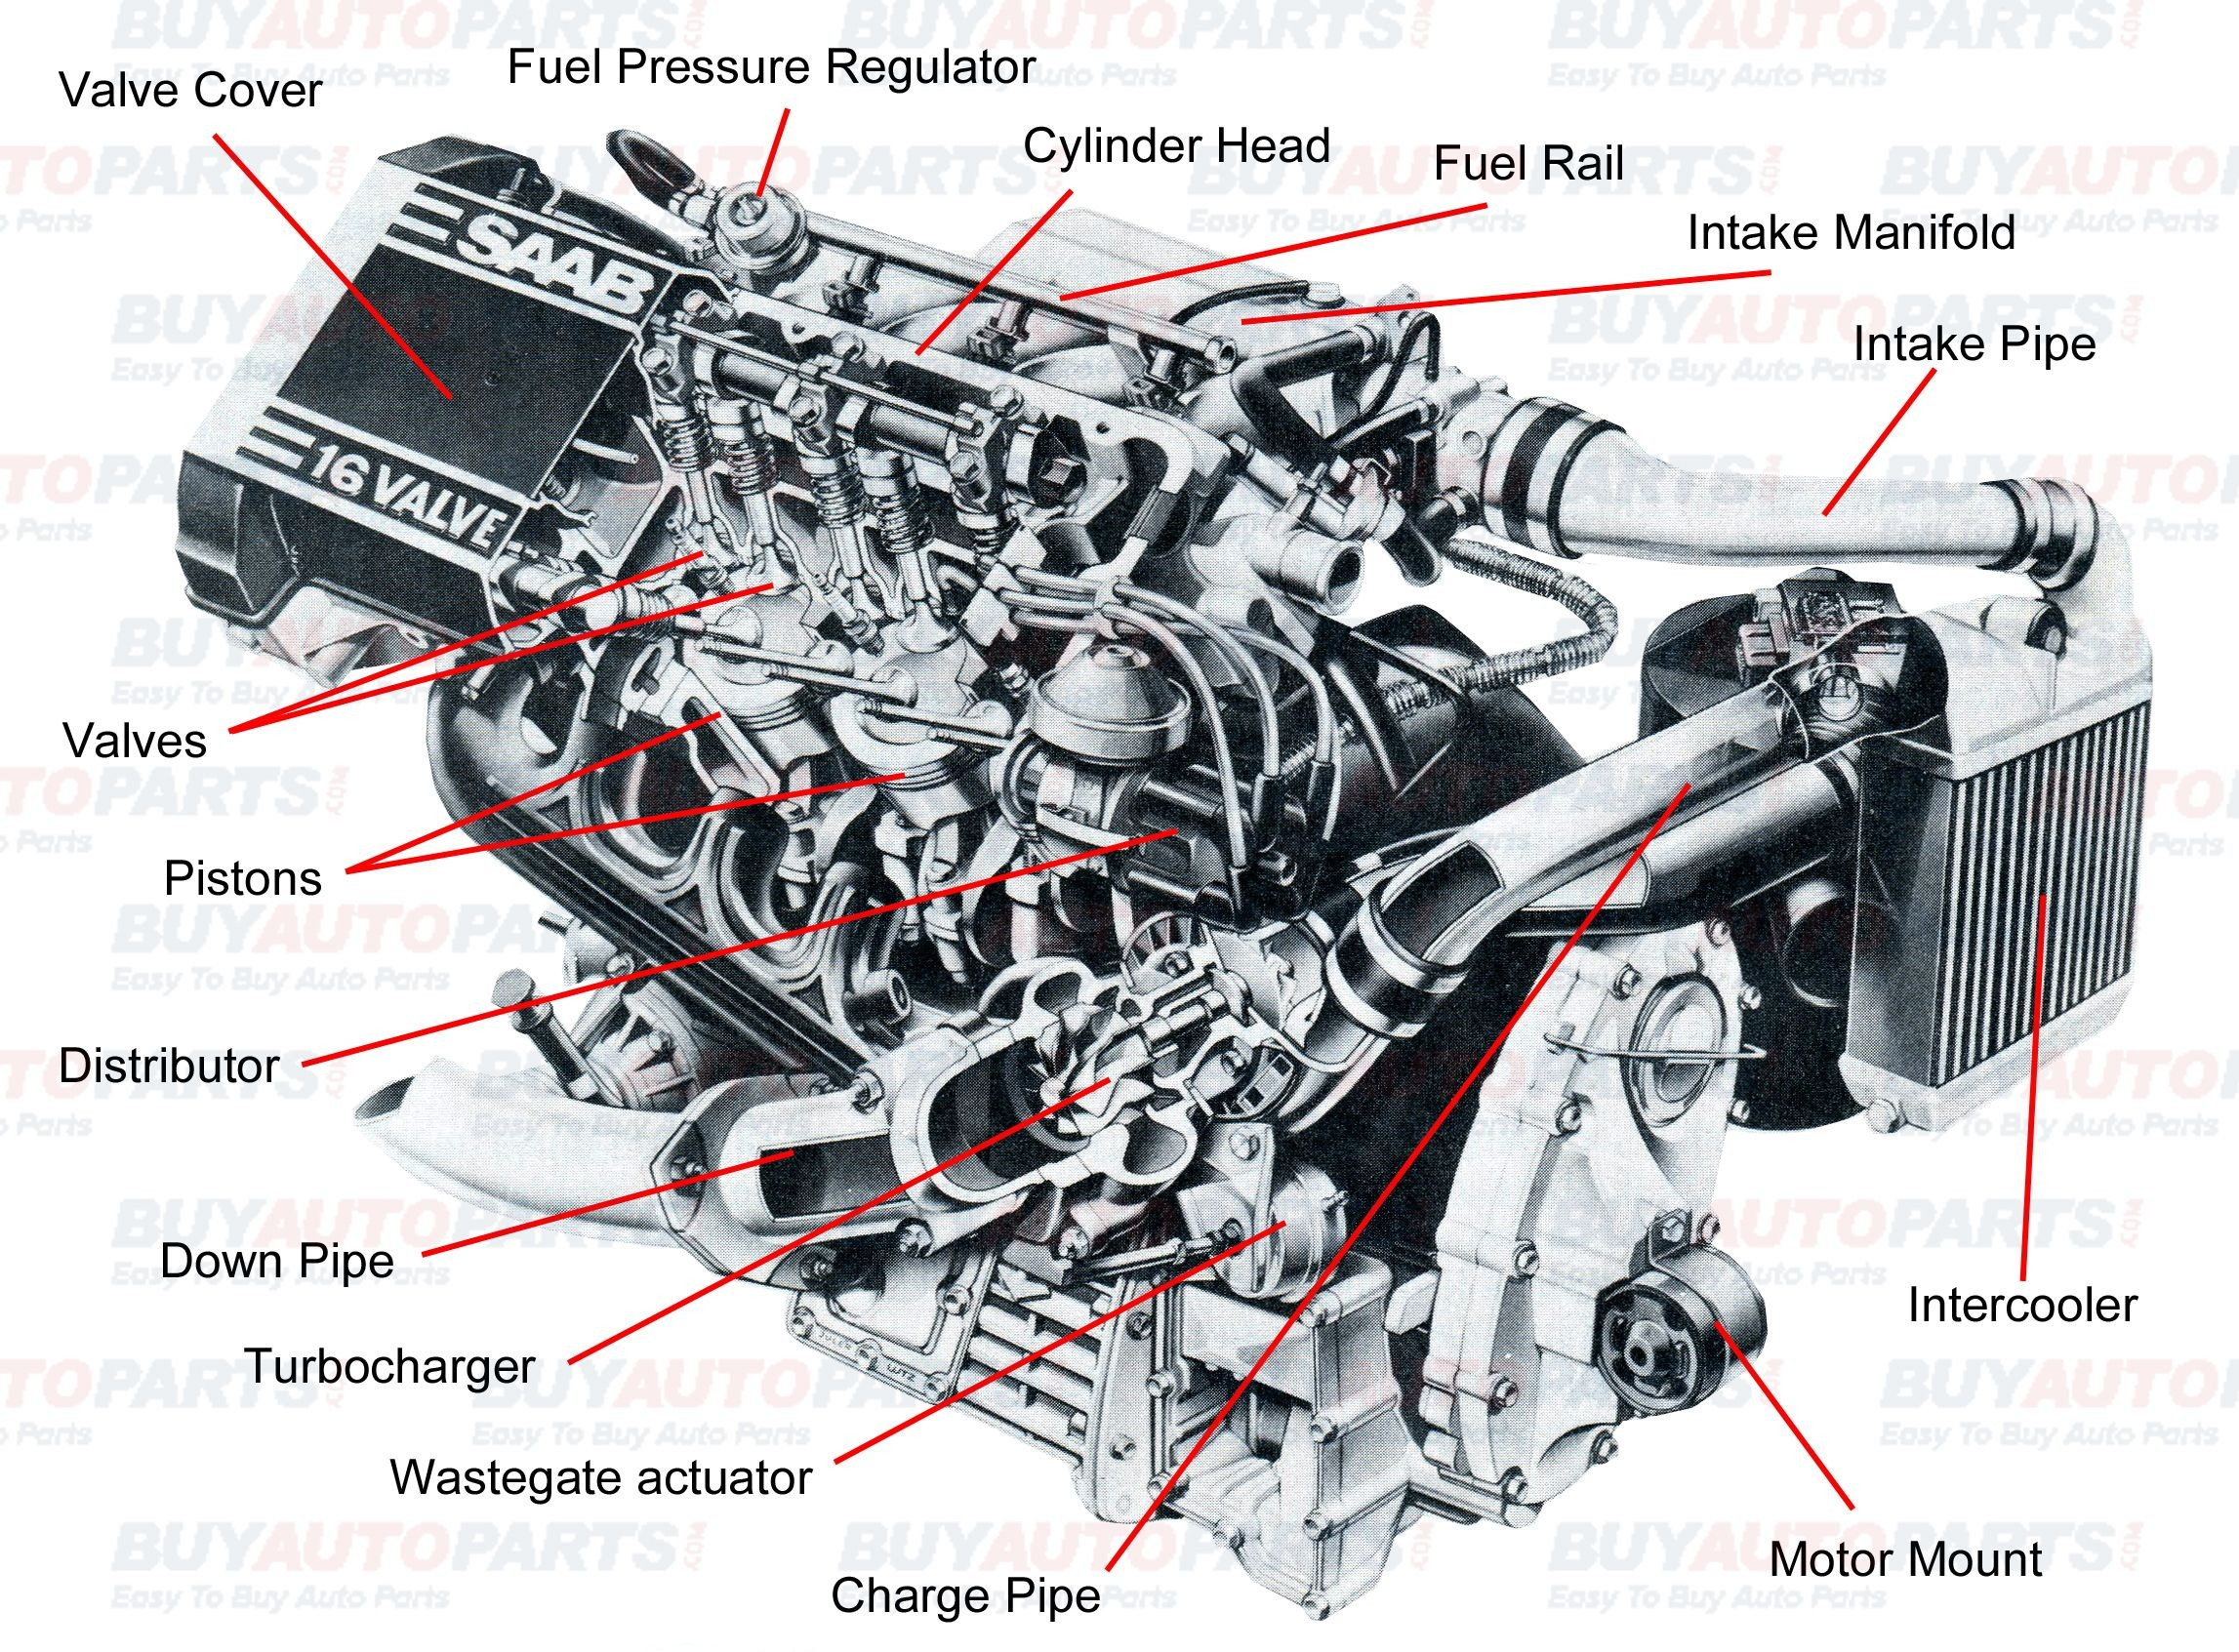 Car Parts Names with Diagram Pin by Jimmiejanet Testellamwfz On What Does An Engine with Turbo